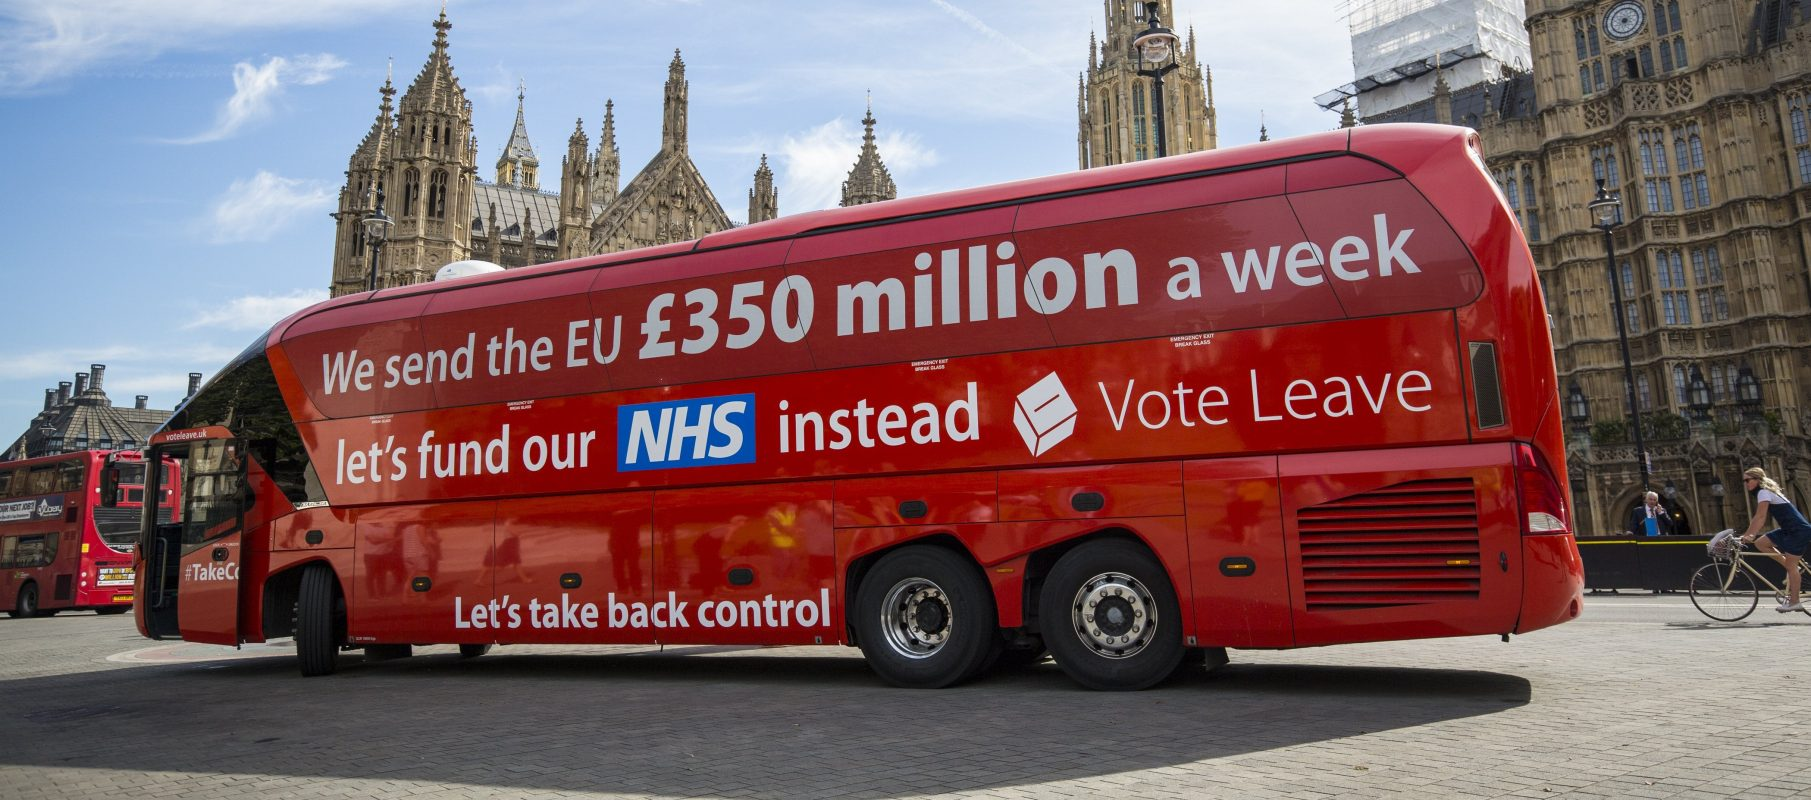 Dominic Cummings has admitted the Leave campaign won by lying – we should never forgive him